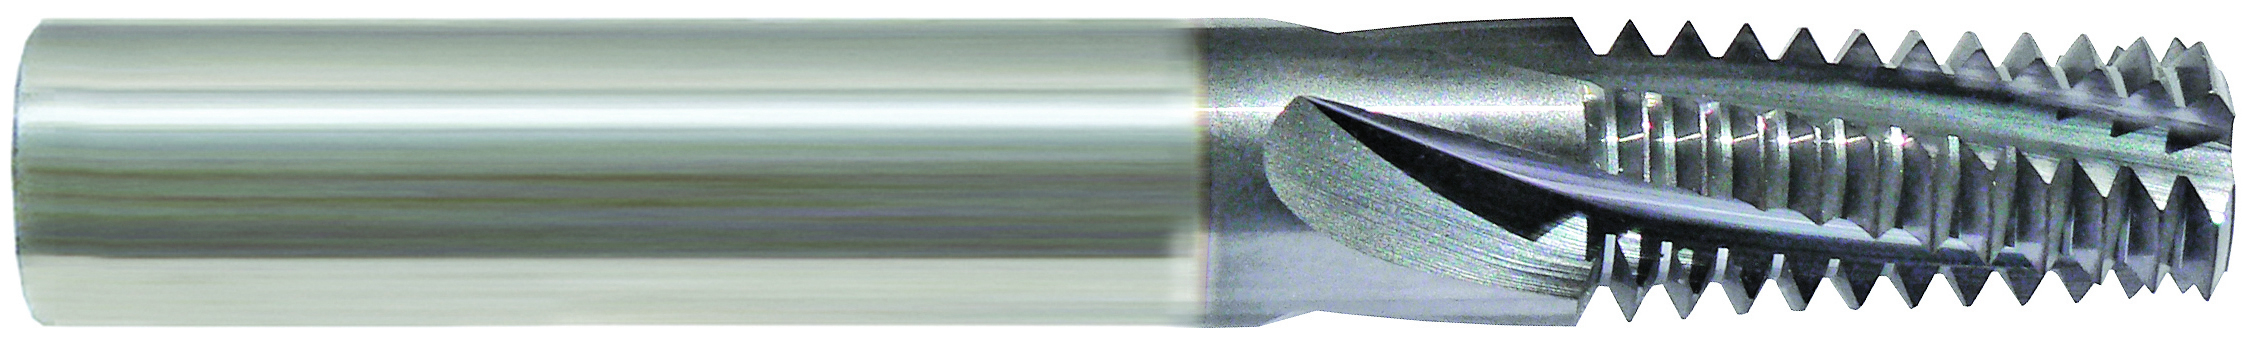 M12-1.75 MC SOLID CARBIDE THREAD MILL